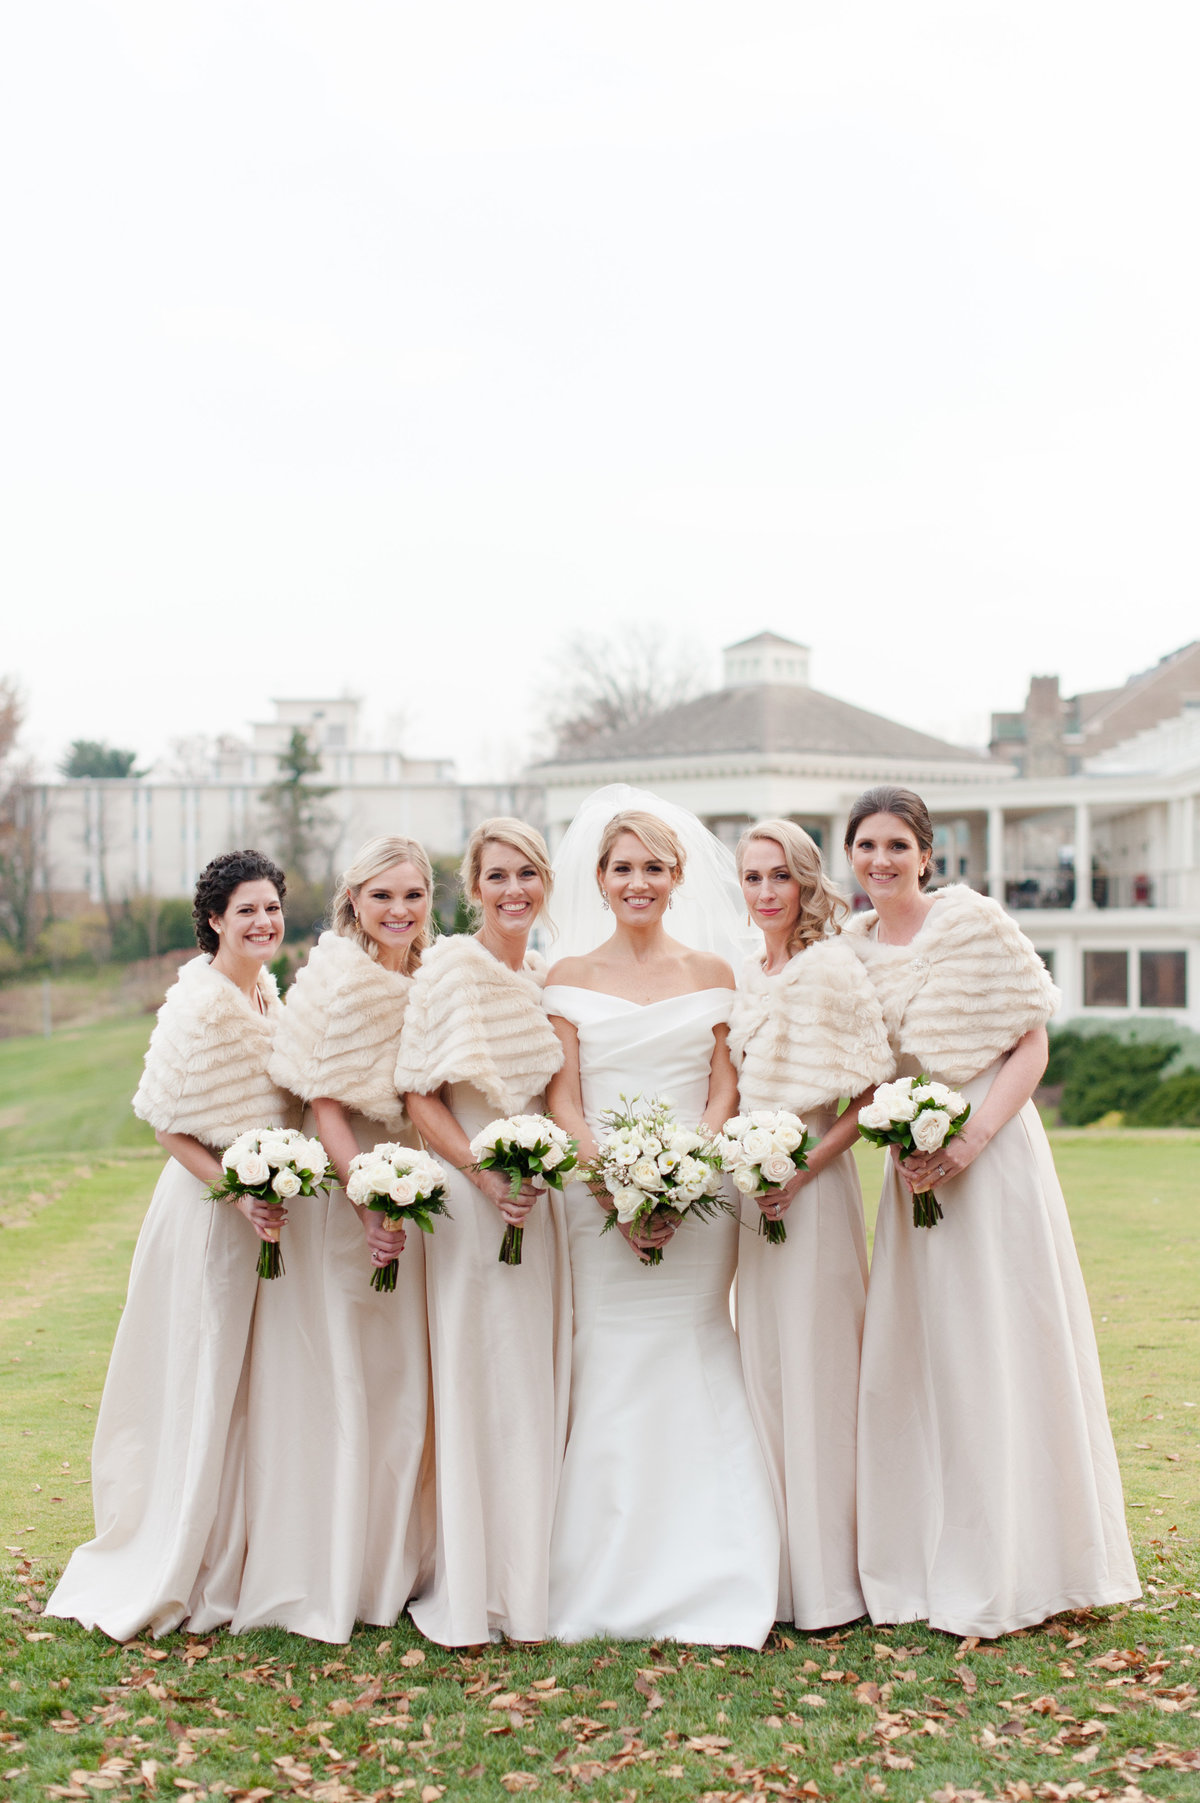 Richmond Virginia Wedding Photographer Michelle Renee Photography-25669